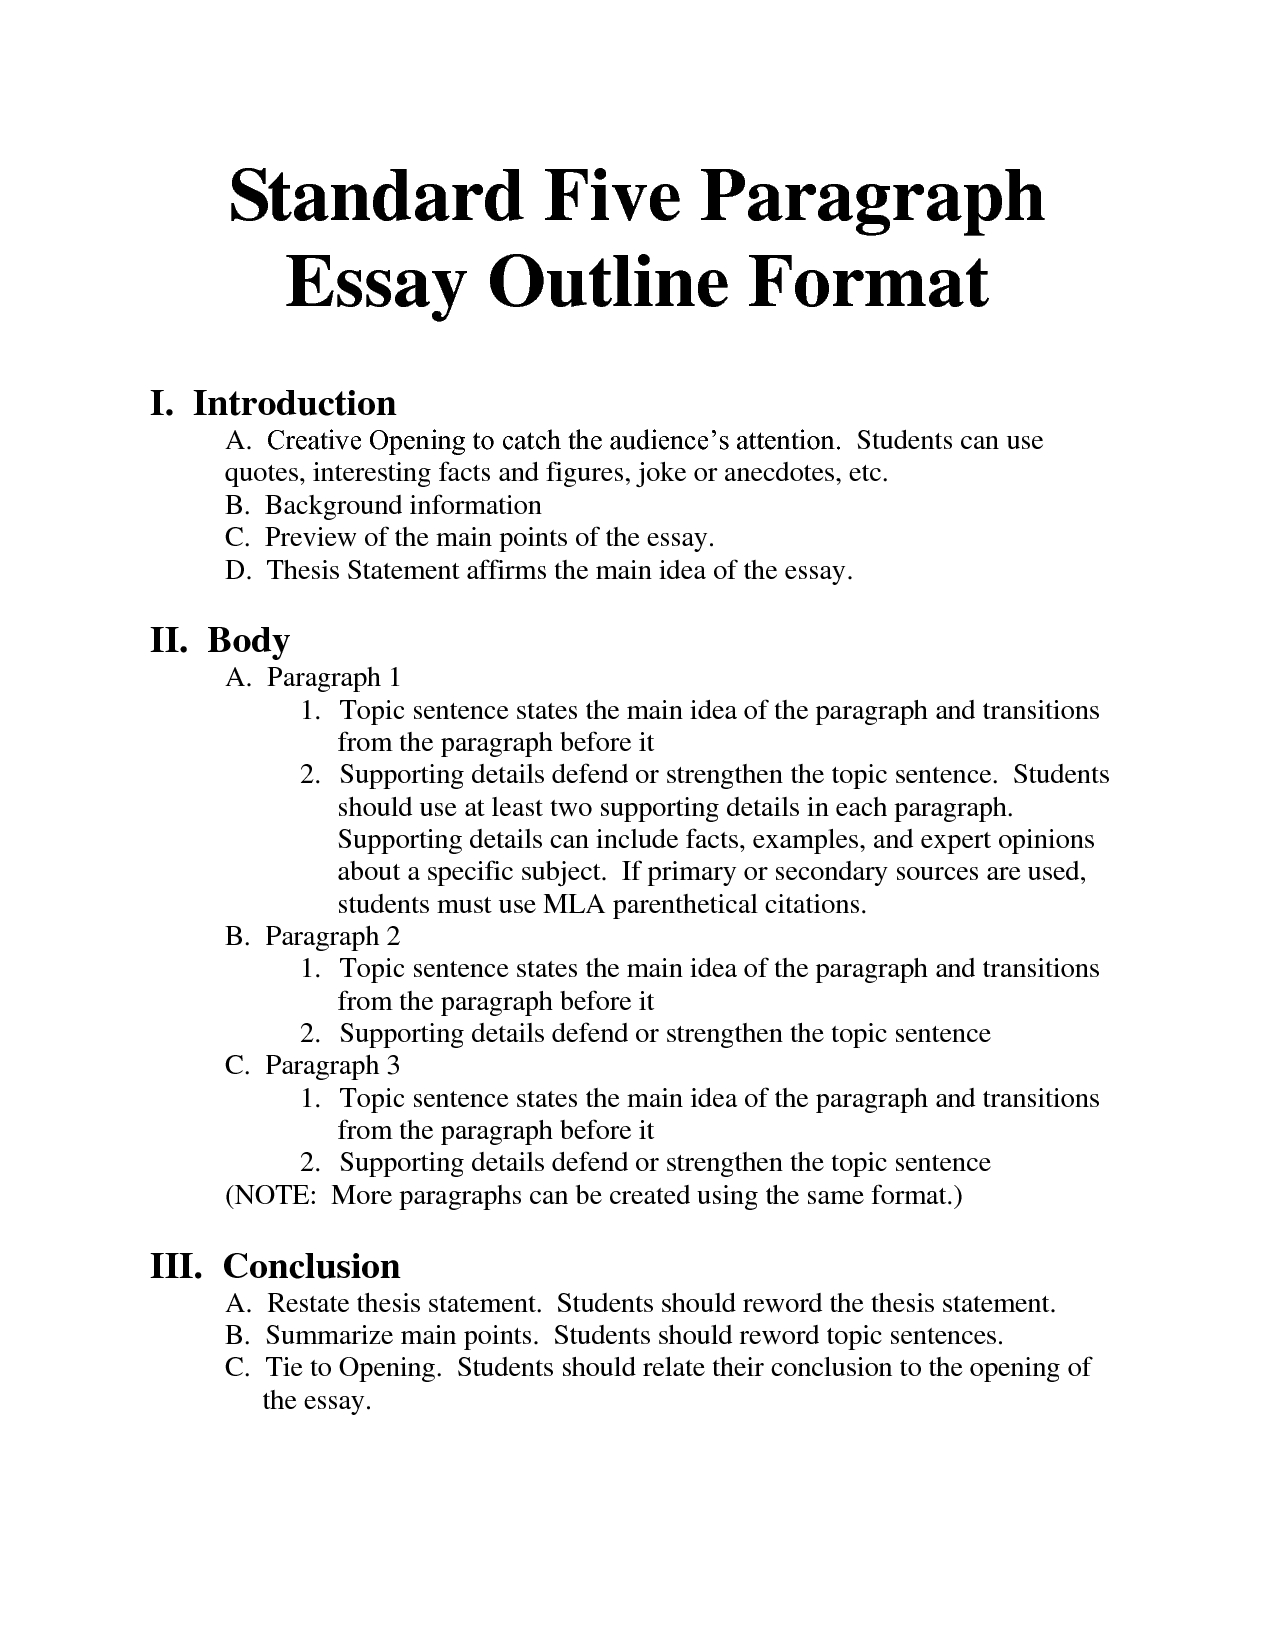 Standard Essay Format - Bing Images | Essays Homeschool throughout Essay Outline Format 22325